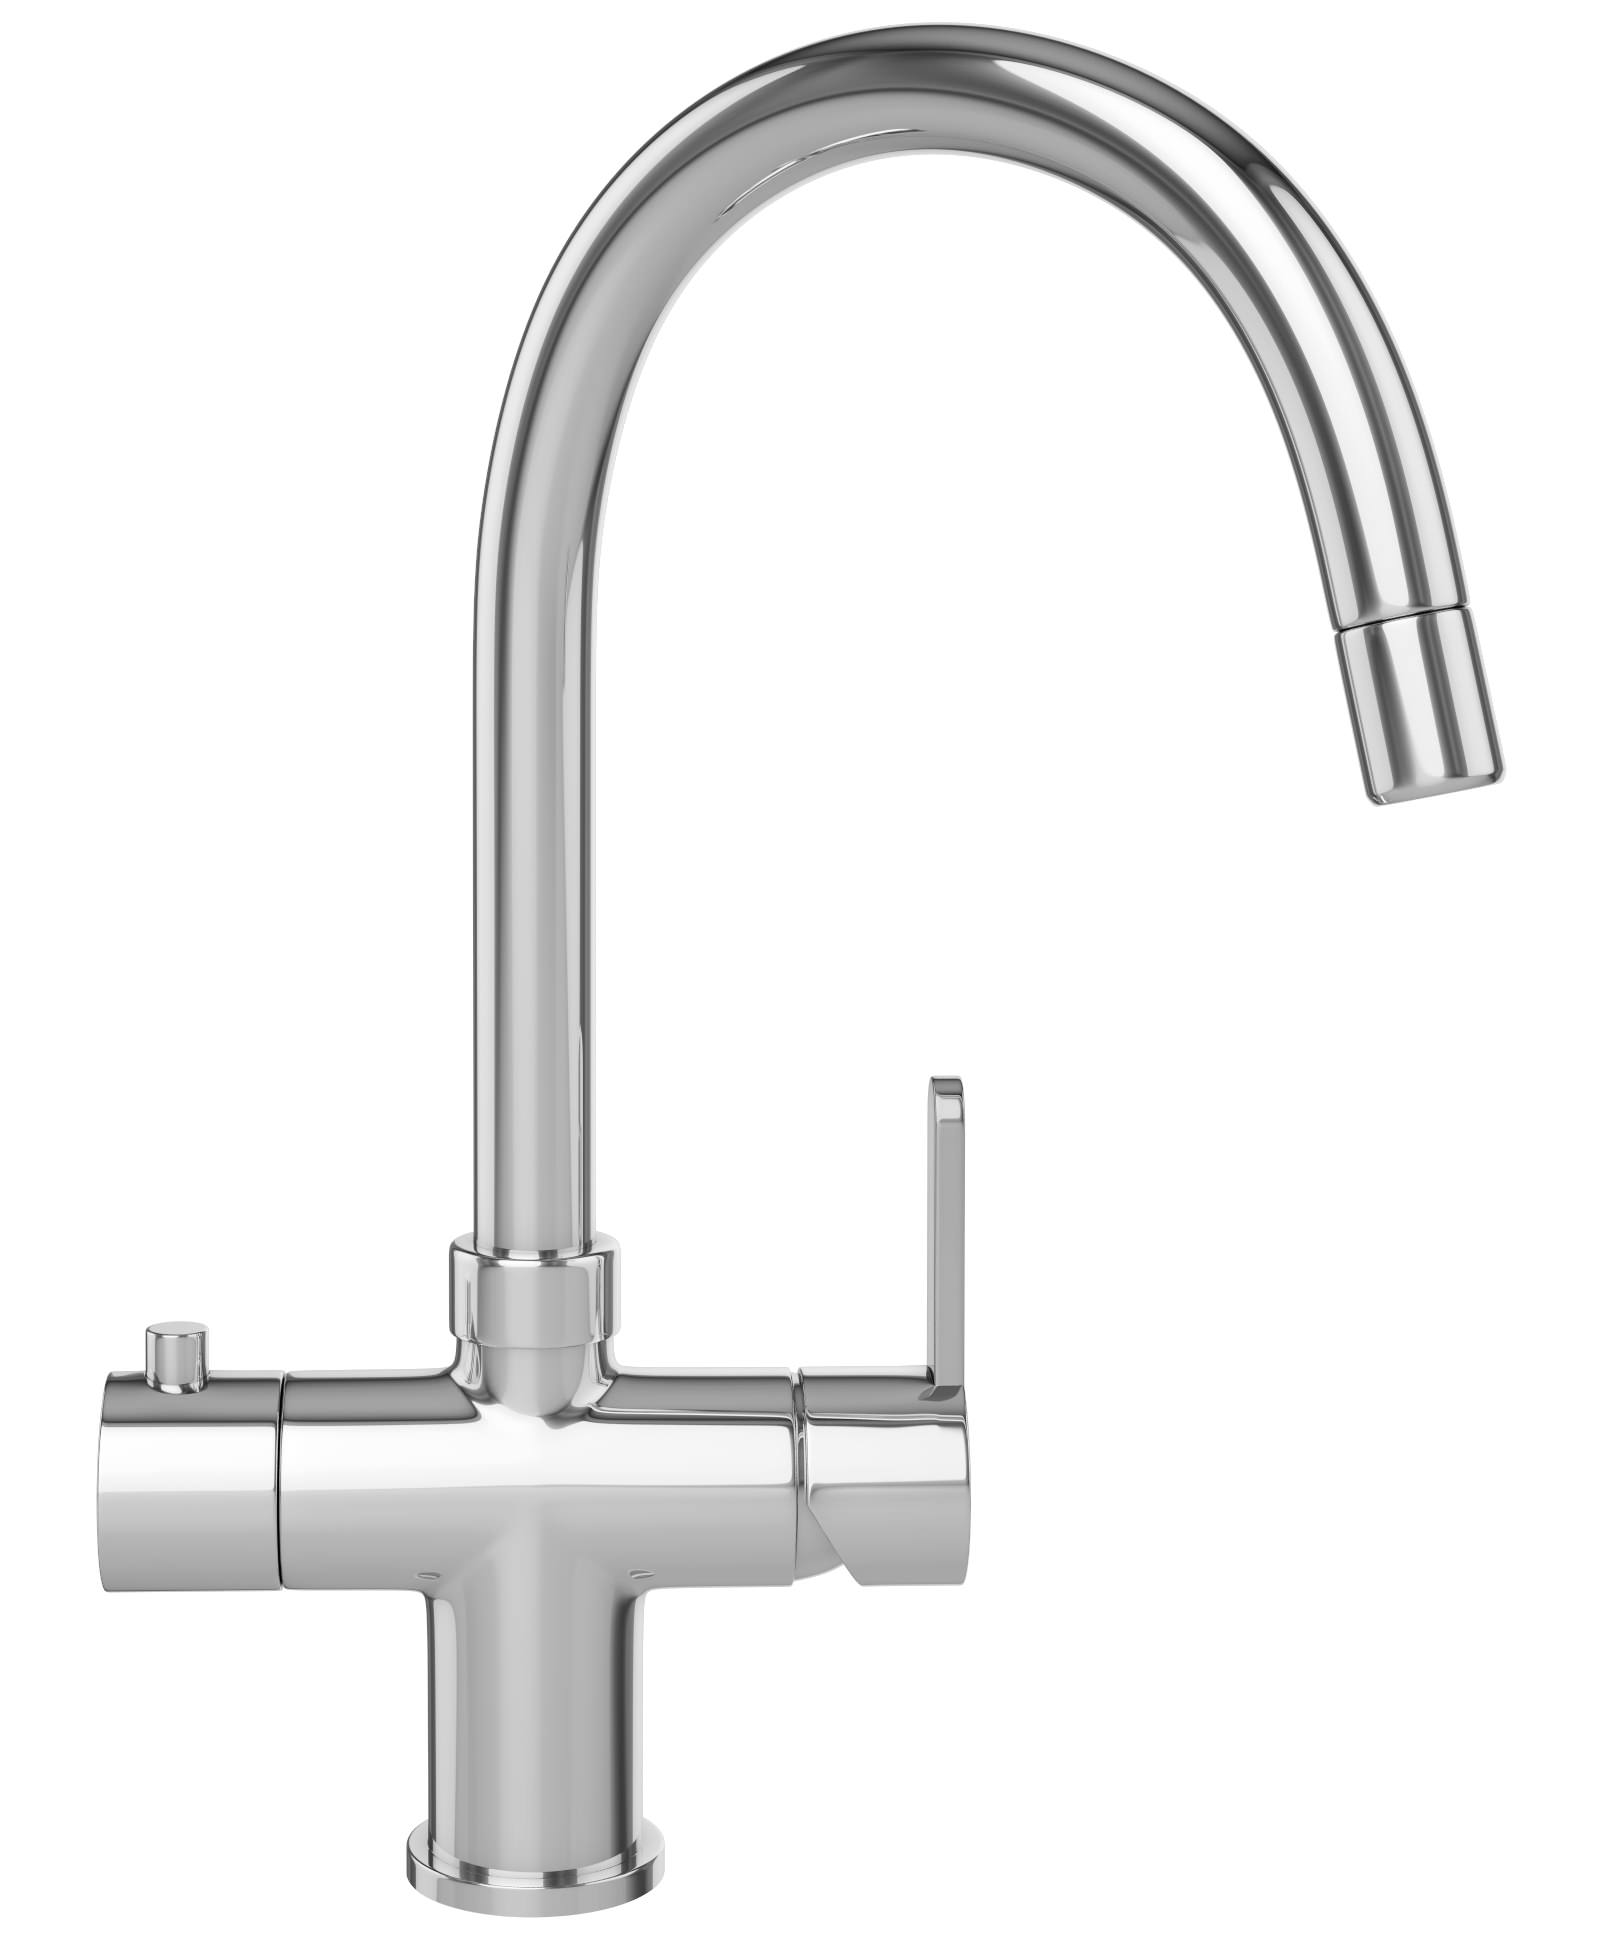 Boiling Water Taps For Kitchens Review